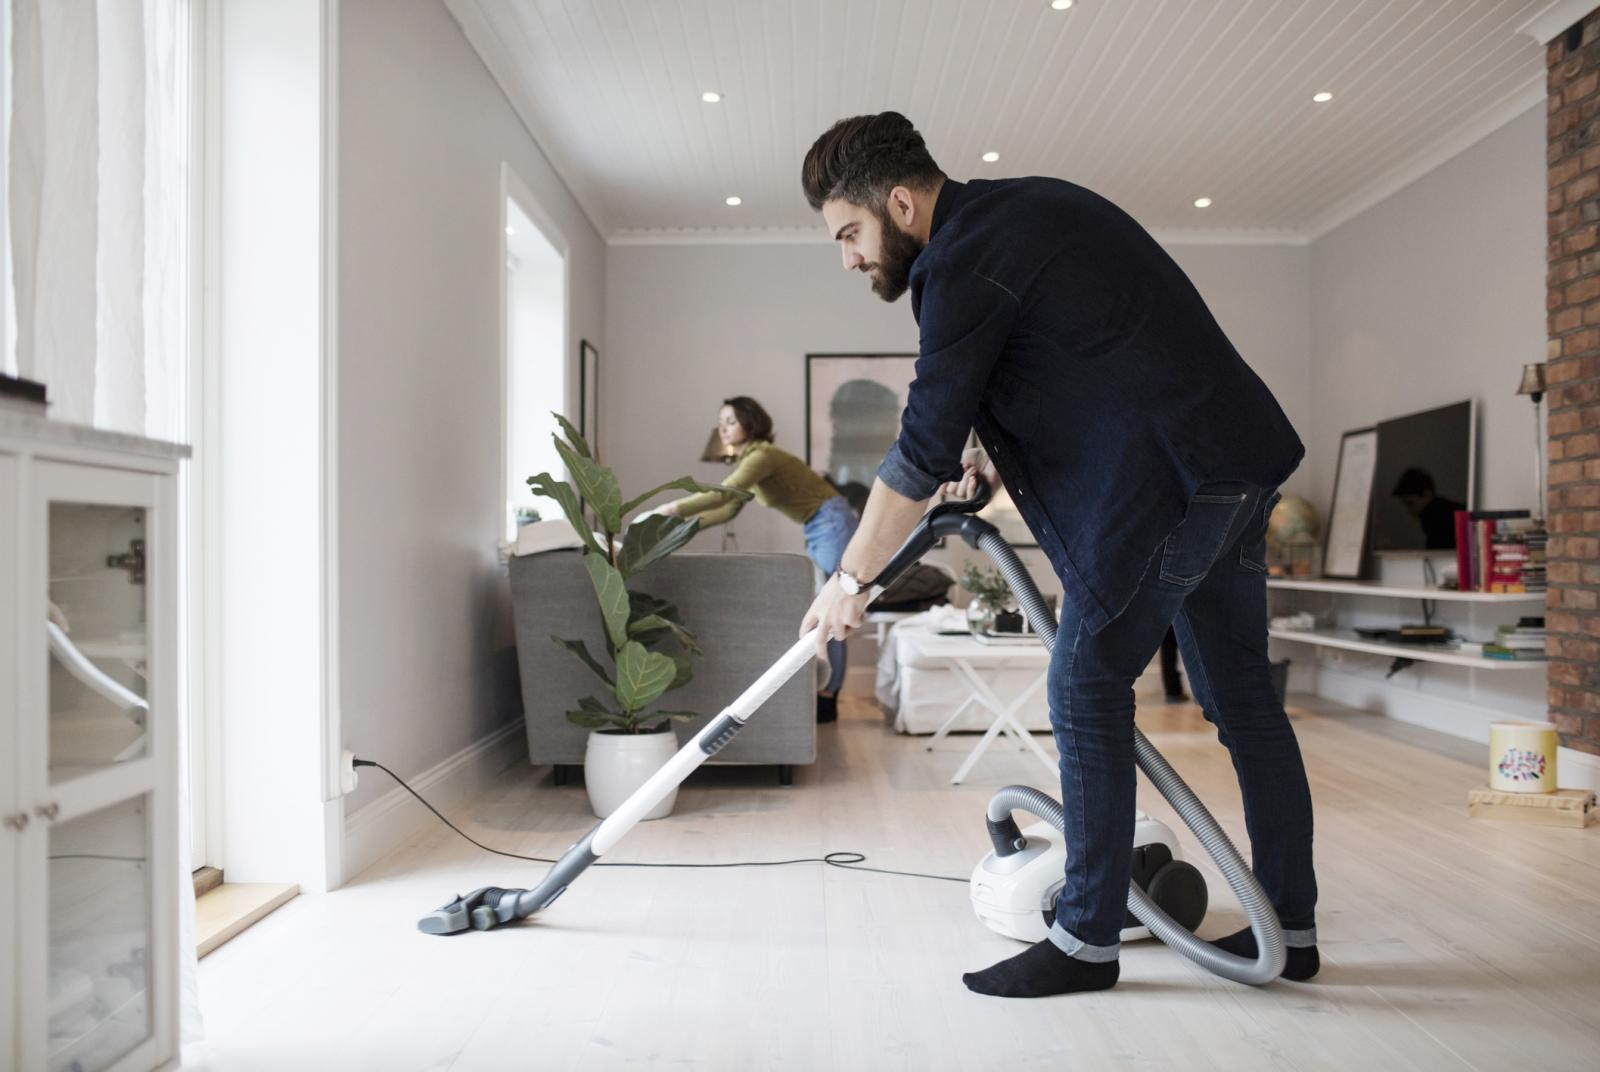 Man vacuuming floor while woman is cleaning